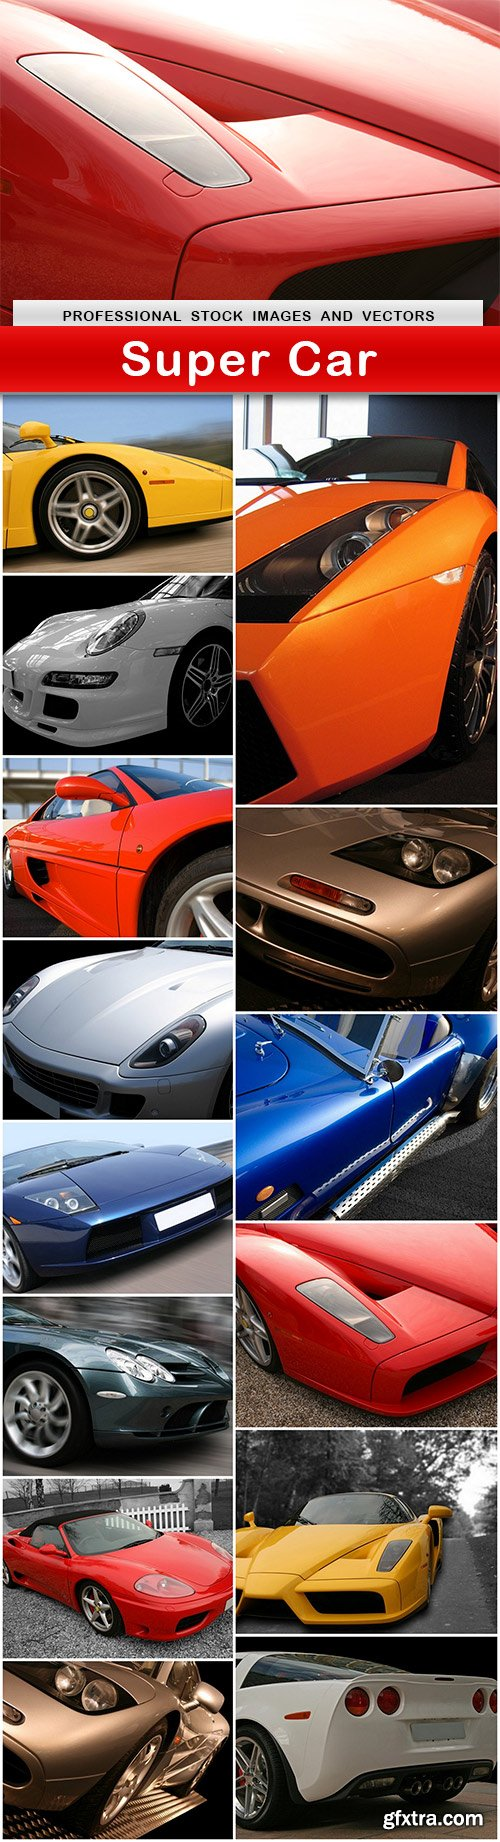 Super Car - 15 UHQ JPEG